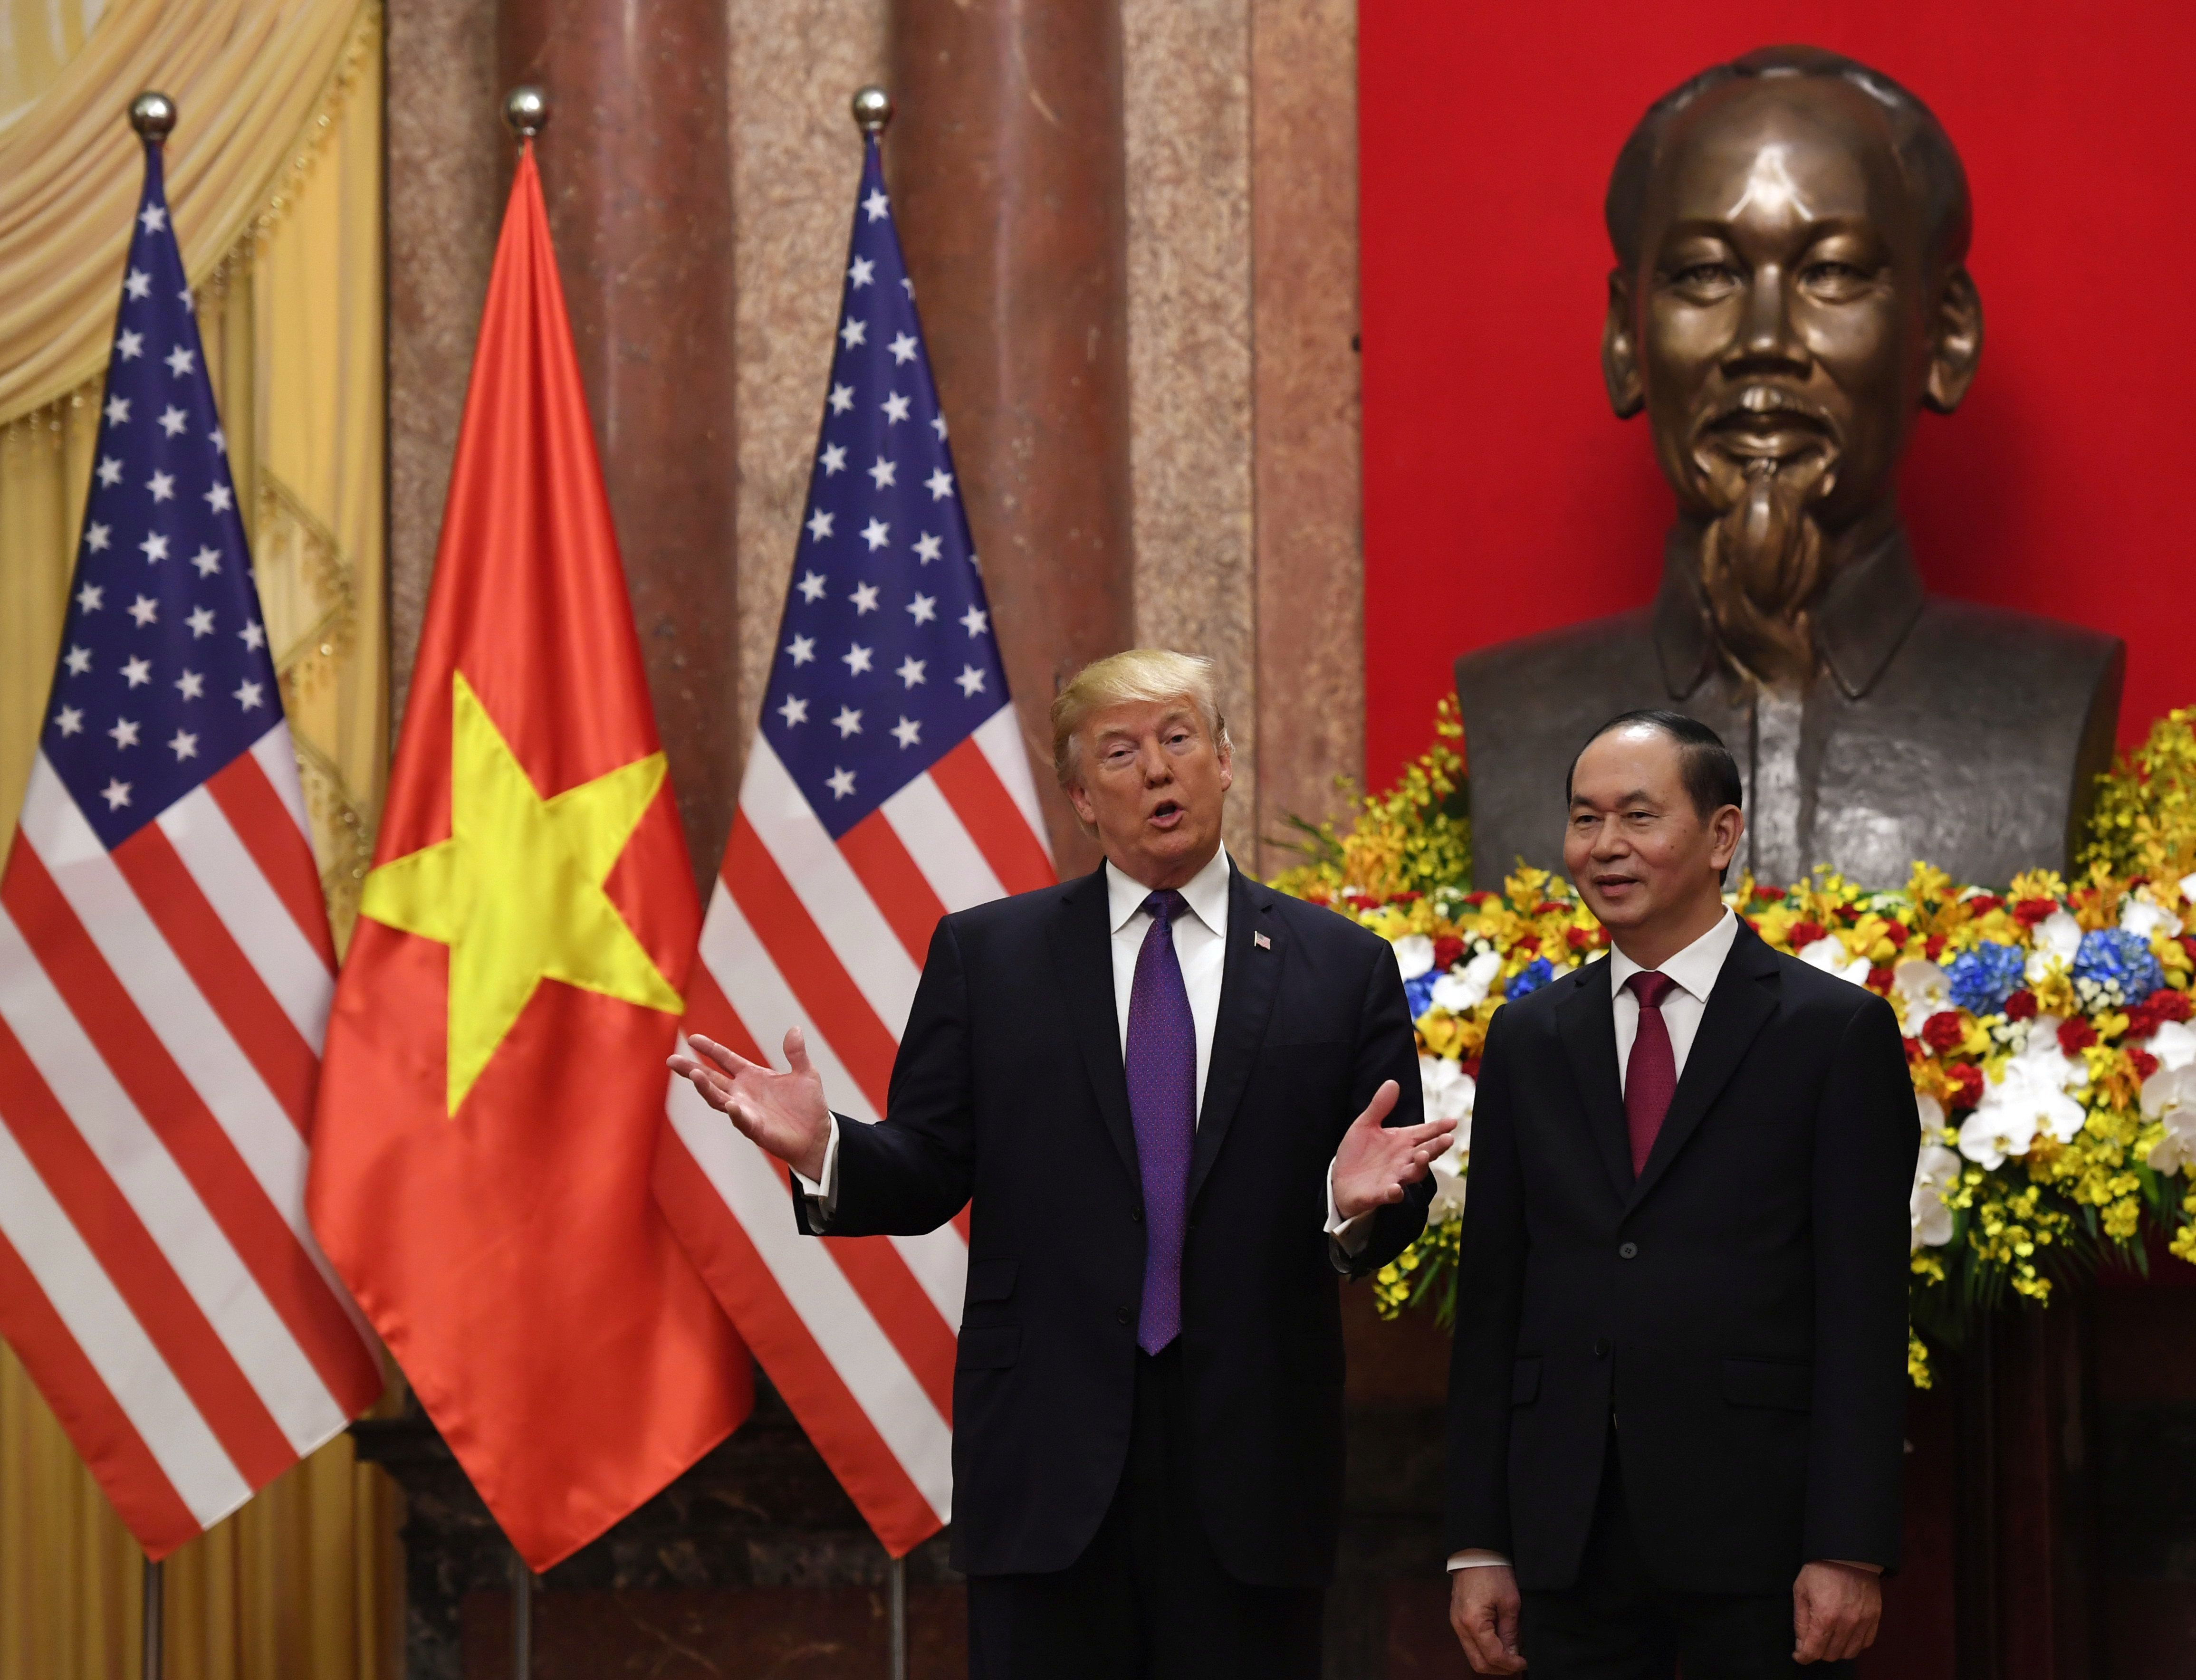 U.S. President Donald Trump poses with VietnamesePresident Trần Đại Quang during a welcoming ceremony at the Presidenti